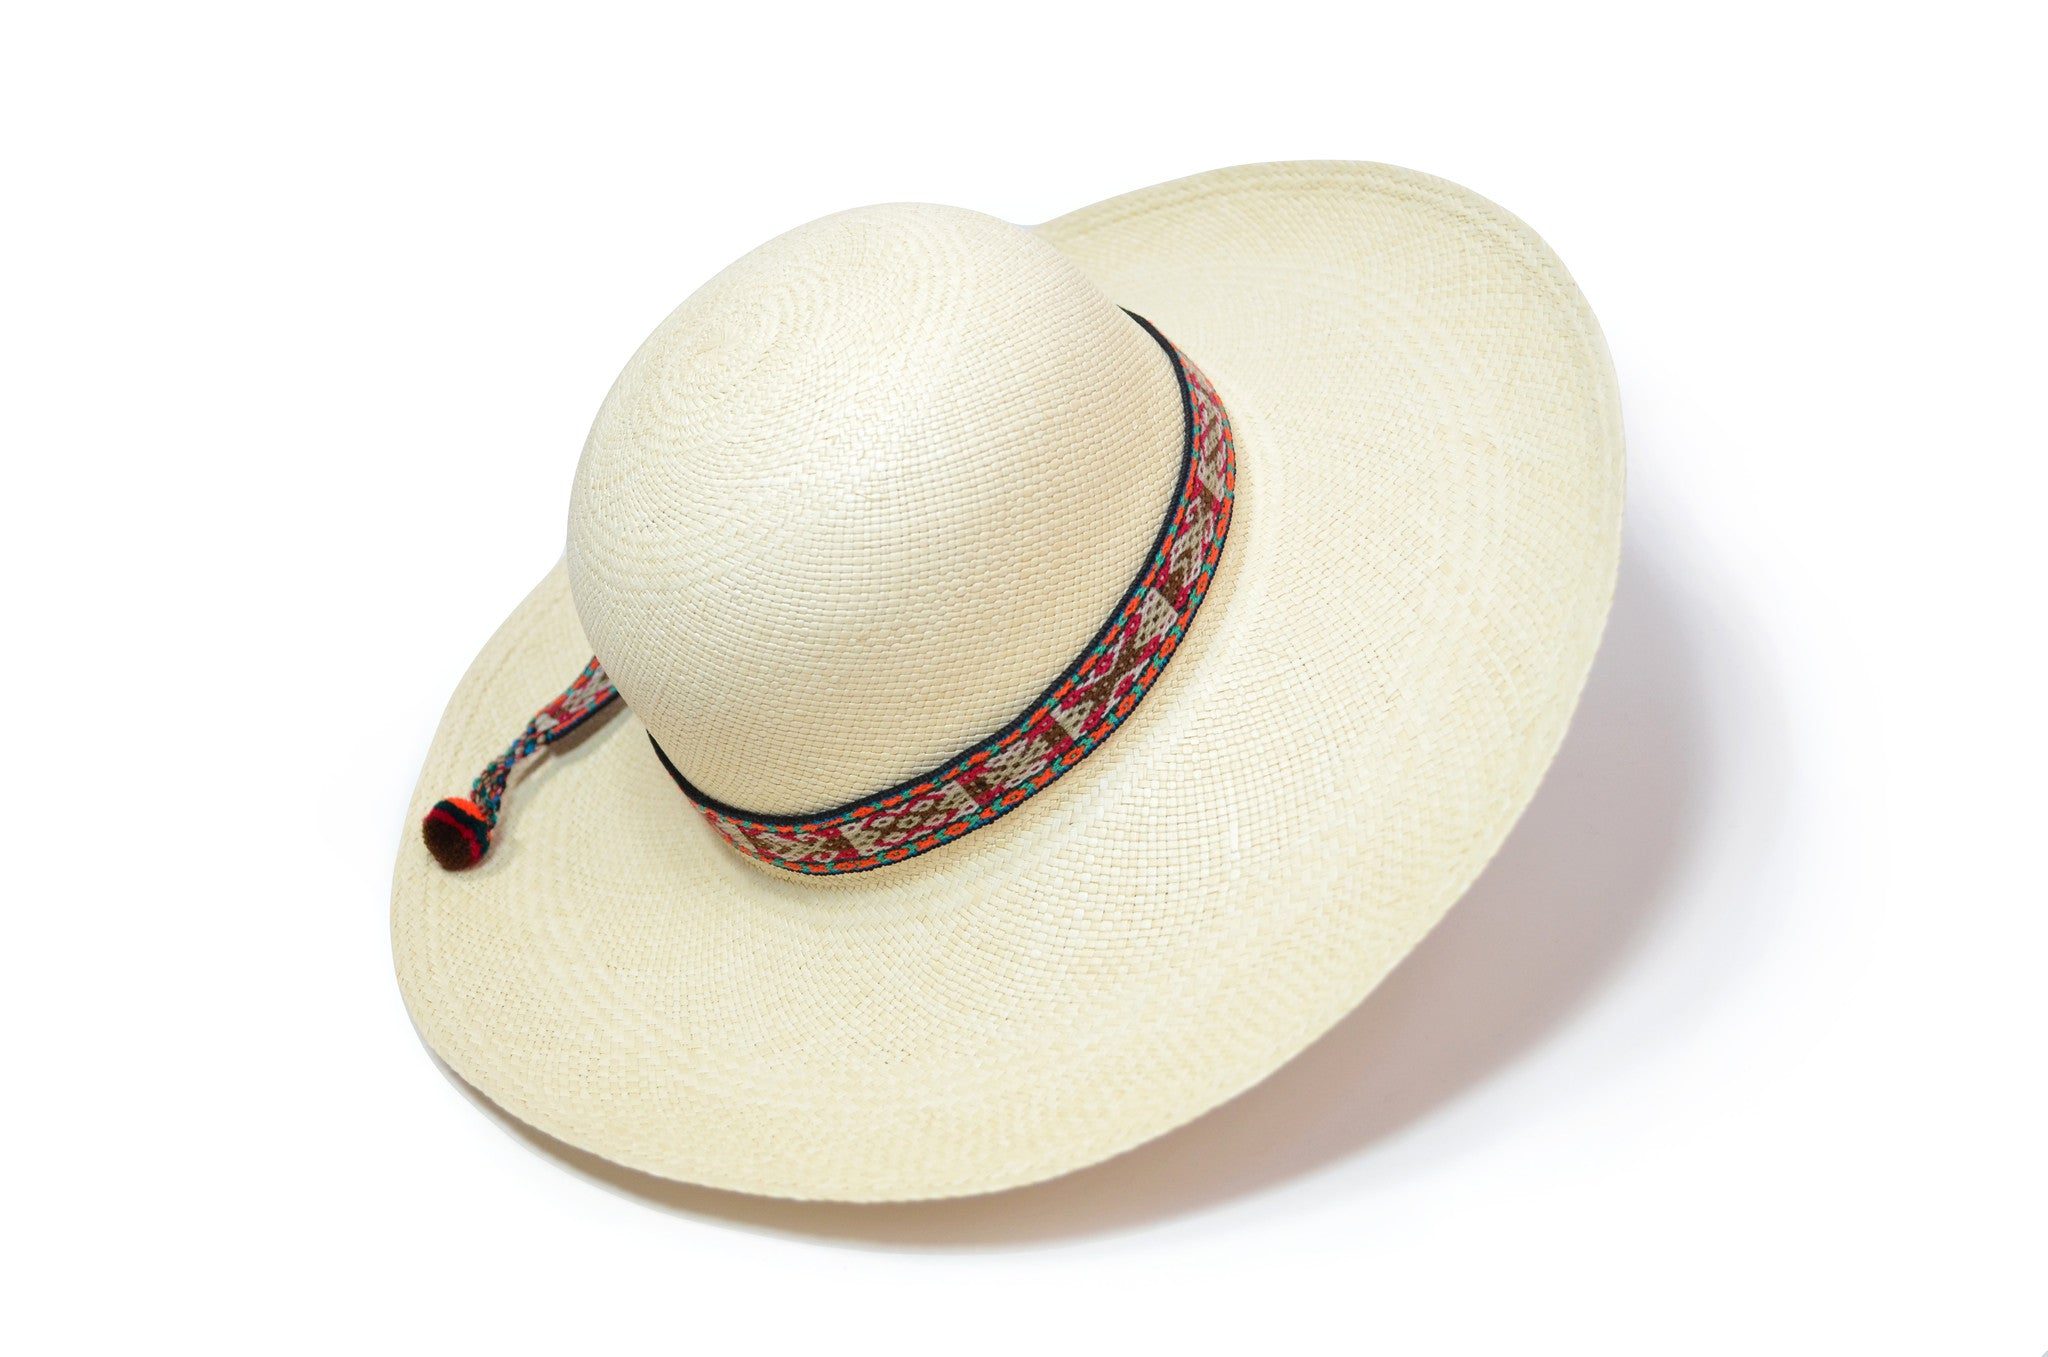 TOQUILLA STRAW BEACH HAT - WIDE BRIM PANAMA HAT (NATURAL COLOR)